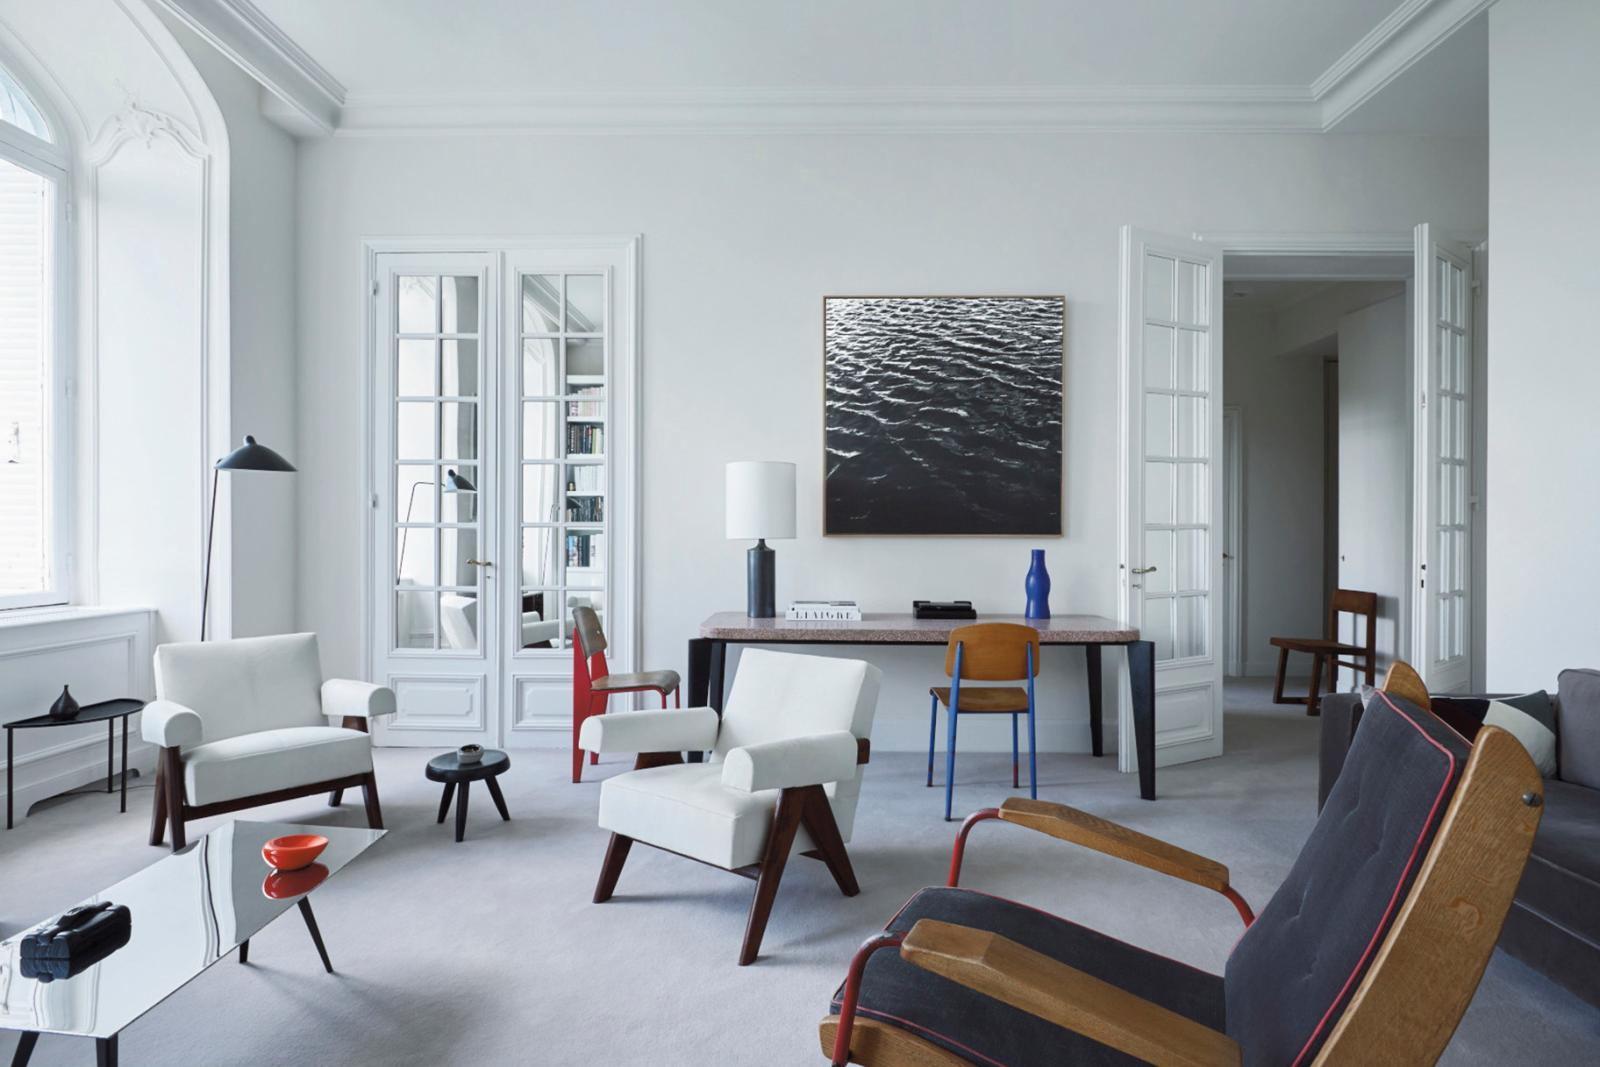 Emmanuel de Bayser's Paris apartment, with furniture by Jean Prouvé, Pierre Jeanneret, Charlotte Perriand and Ron Arad, and ceramics and lamps by Geor